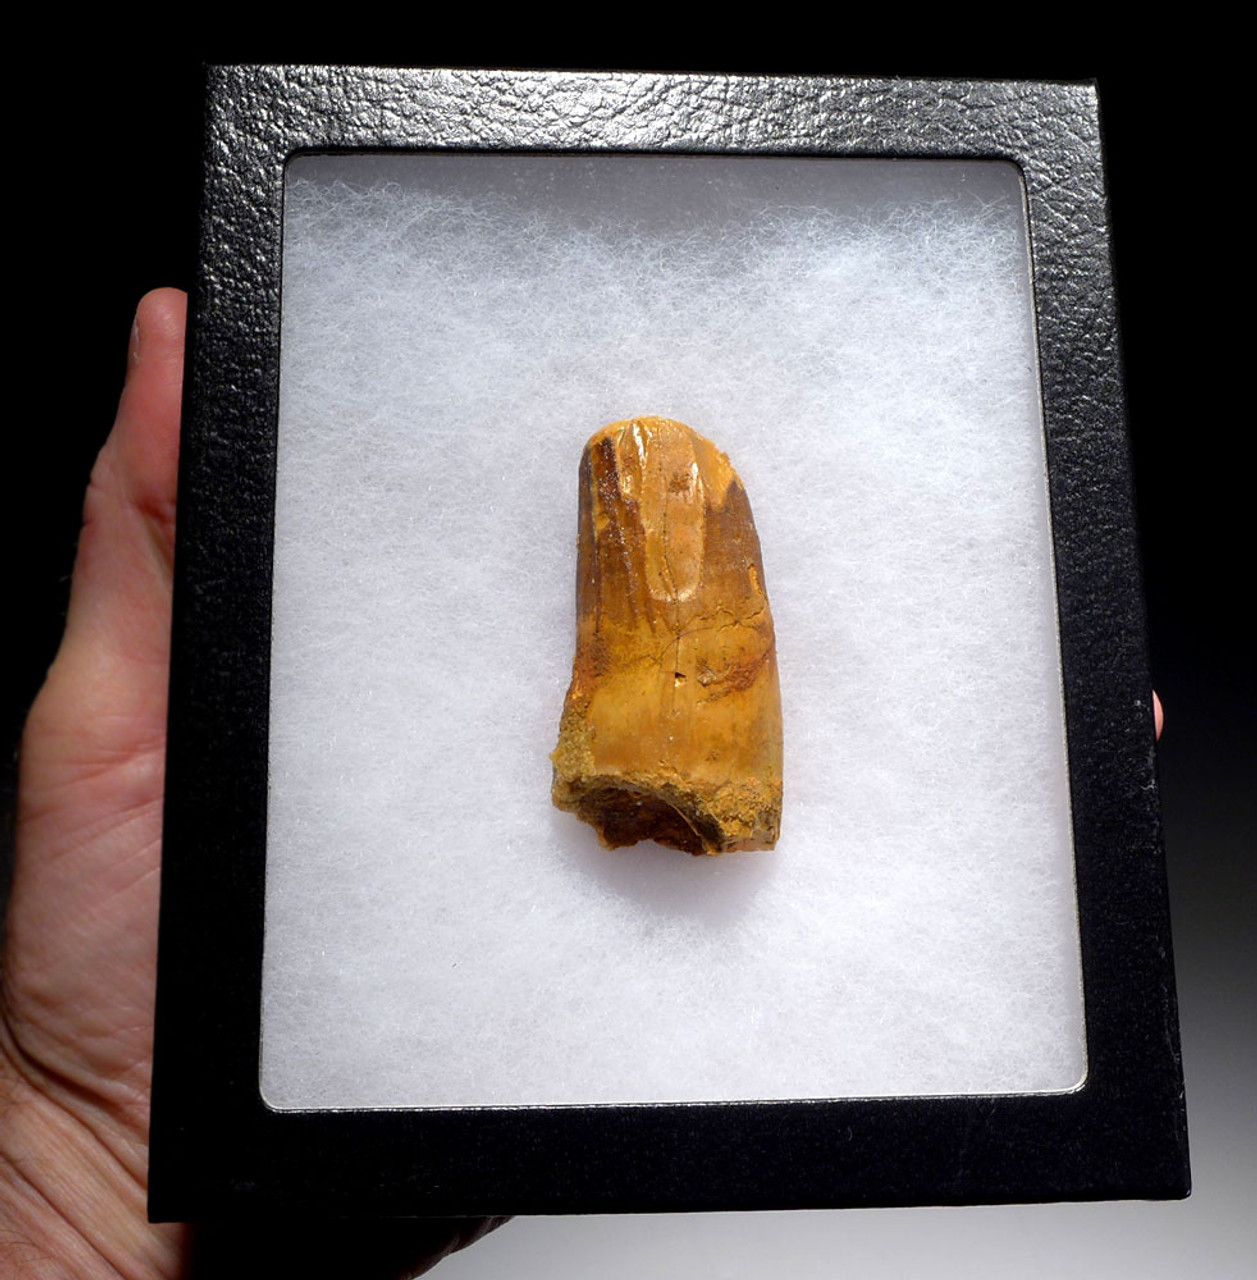 FAT SPINOSAURUS FOSSIL TOOTH WITH HEAVY FEEDING WEAR FROM A HUGE DINOSAUR  *DT5-410